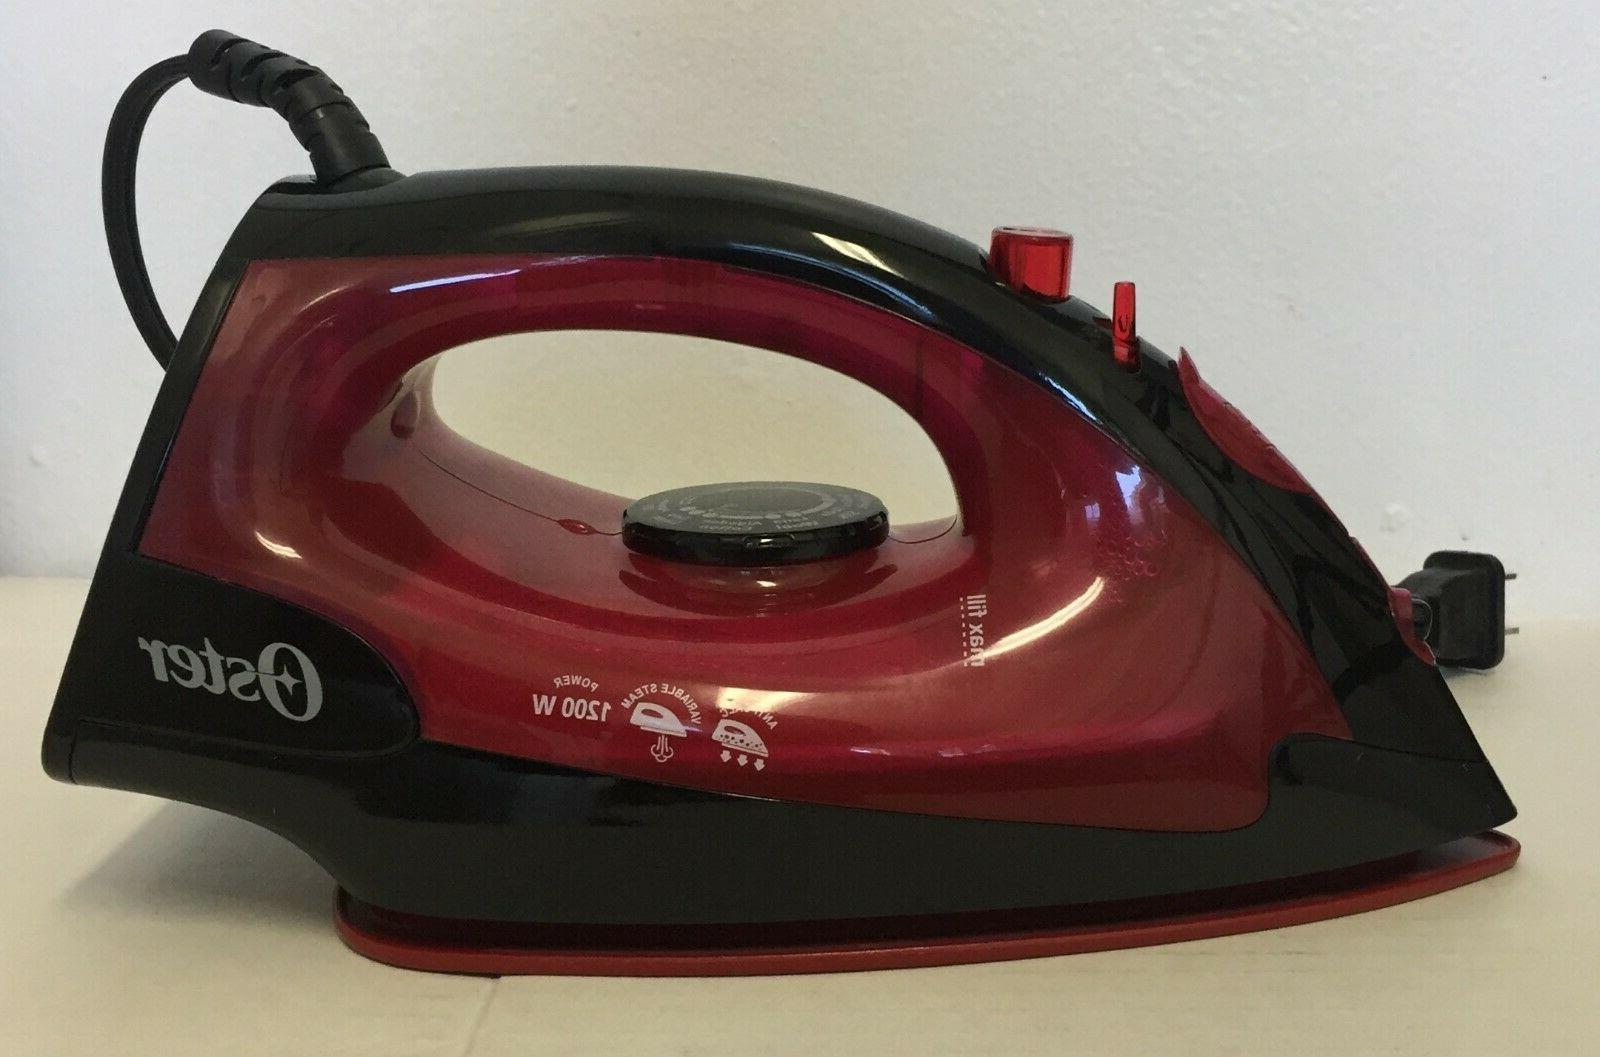 steam iron non stick colored soleplate plancha